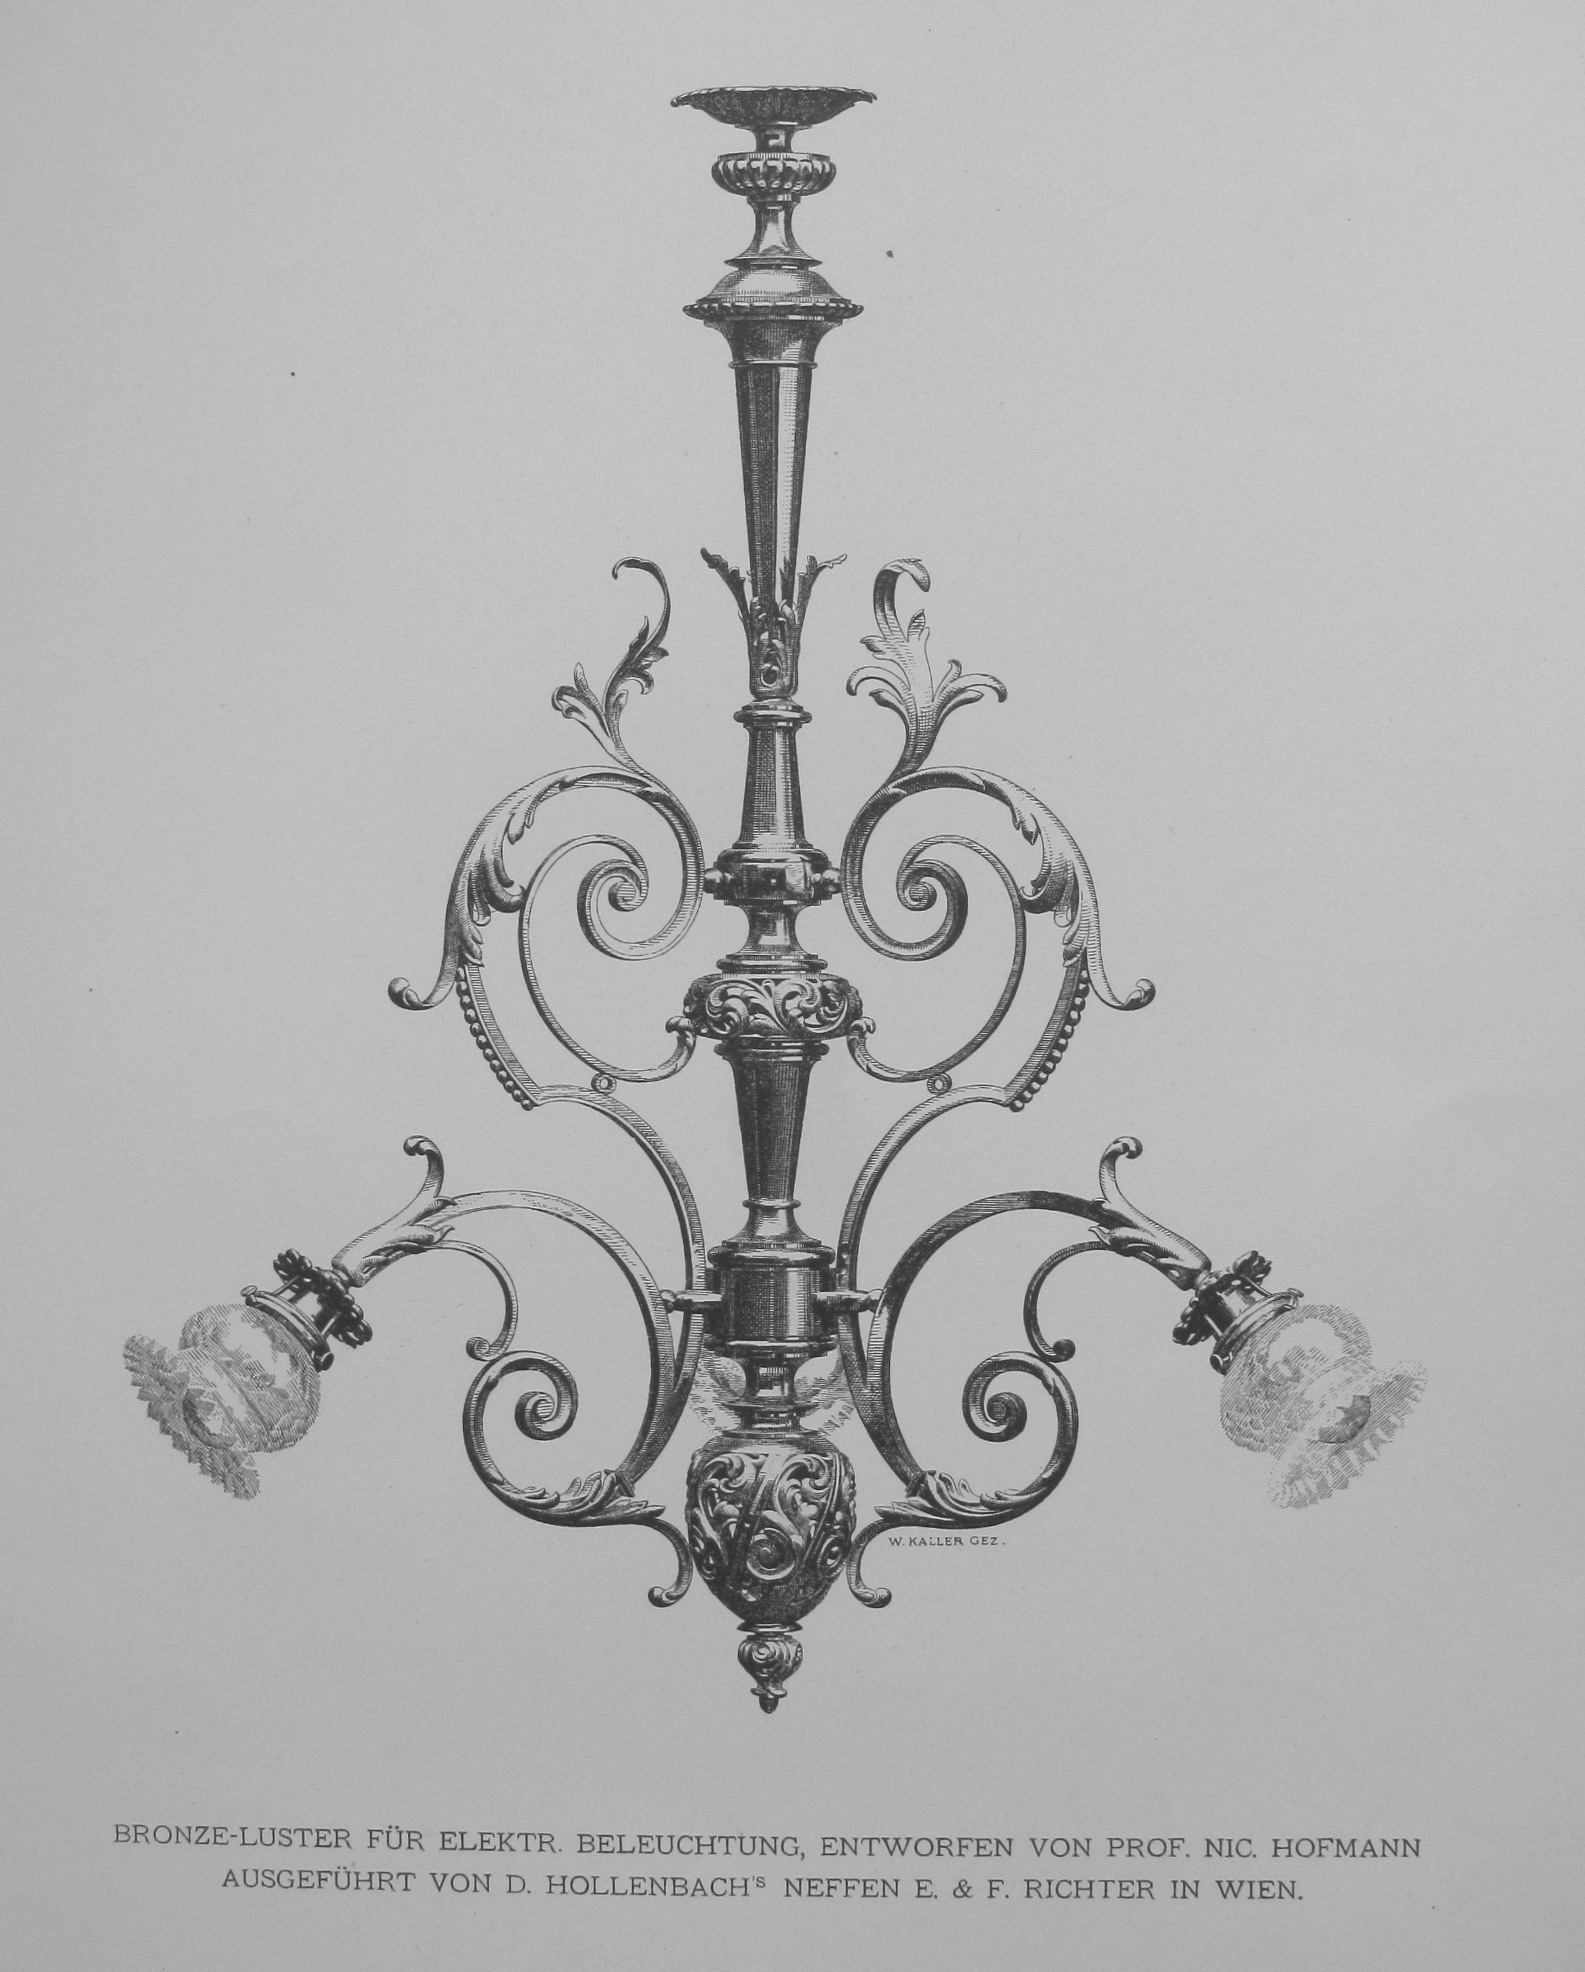 A chandelier designed by a professor from Vienna Nic. Hofmann in 1897. Reproduced from: the Library of the Vilnius Academy of Arts, 7.03(051)Bl-17.